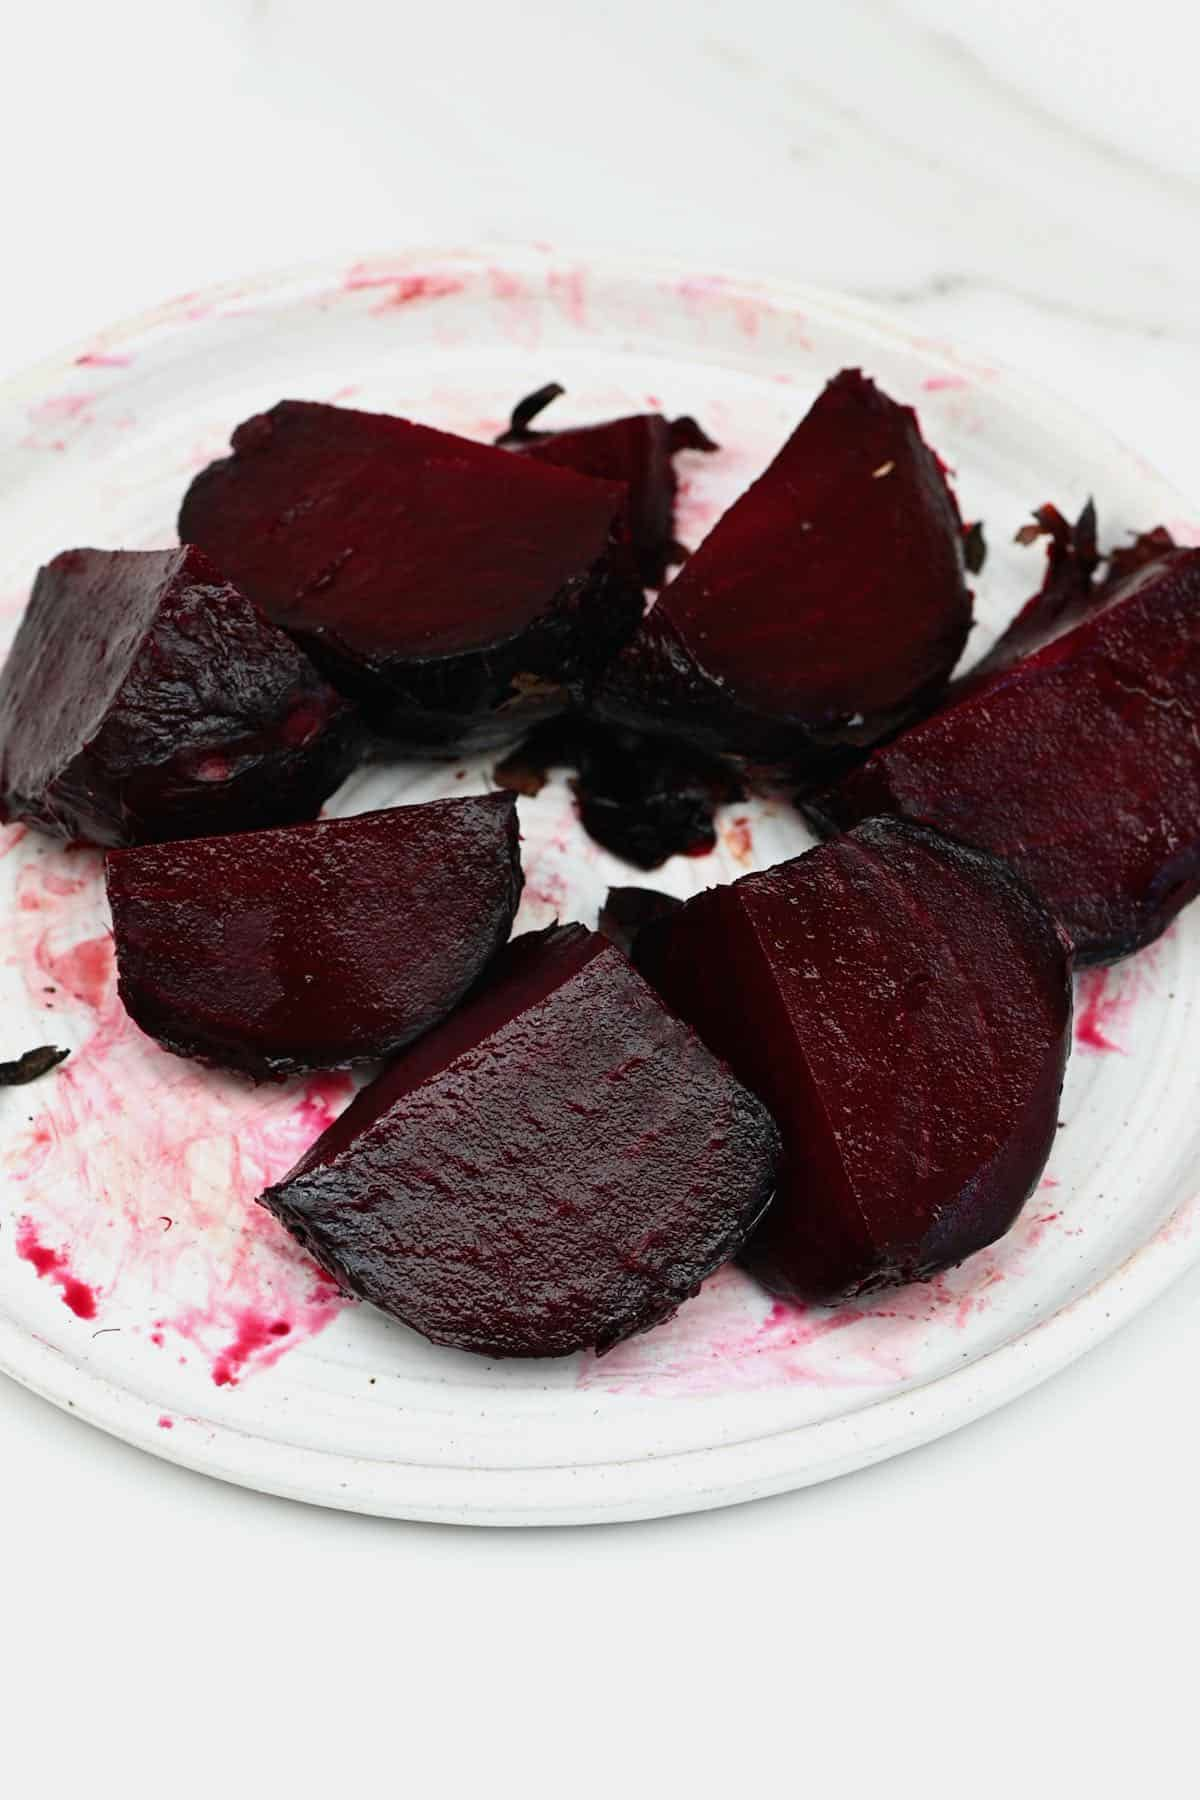 Sliced beetroot on a plate